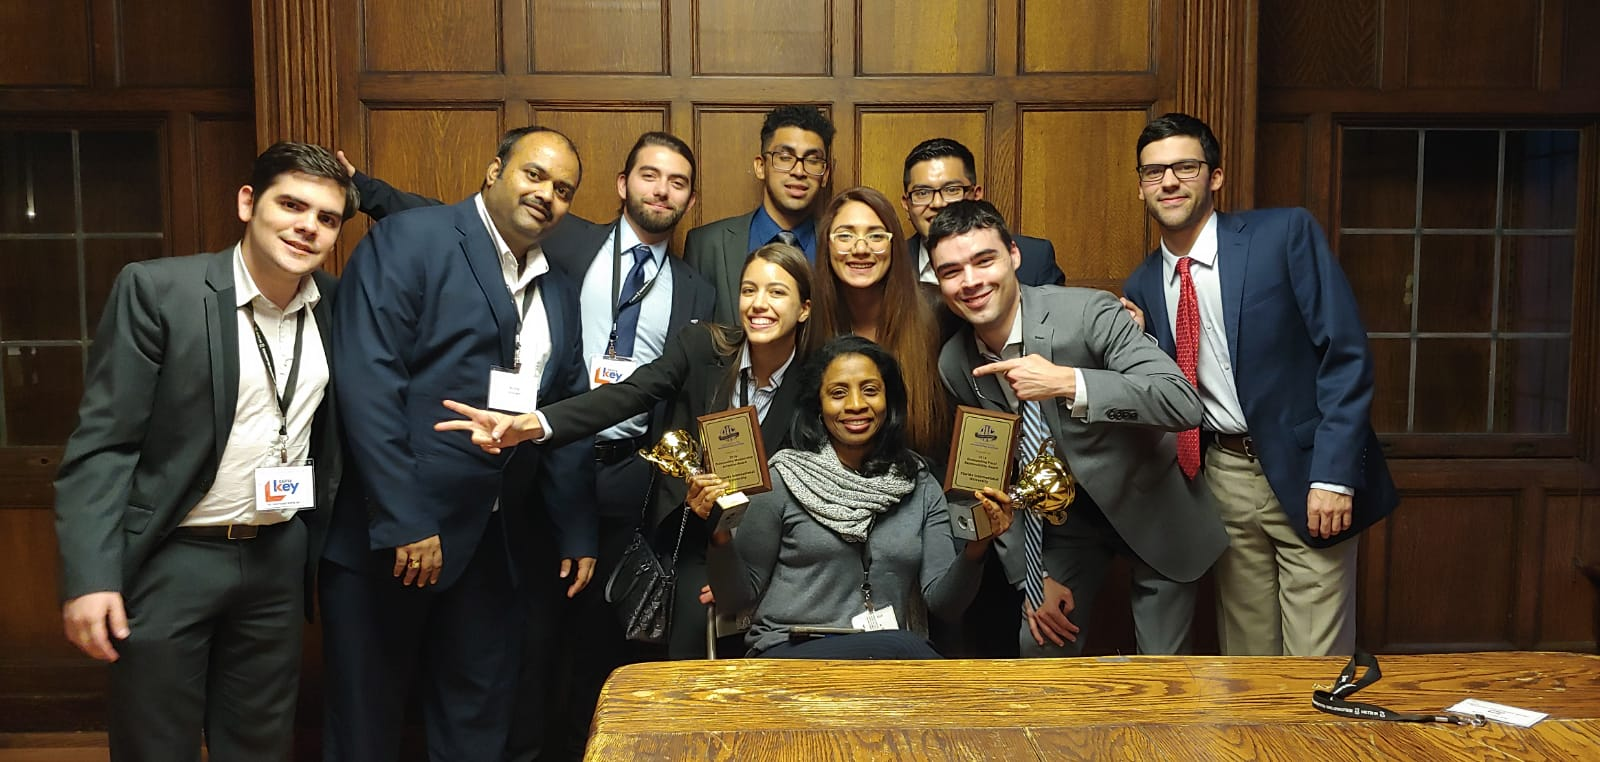 2019 - Students capture top awards in business analytics, blockchain at national conference